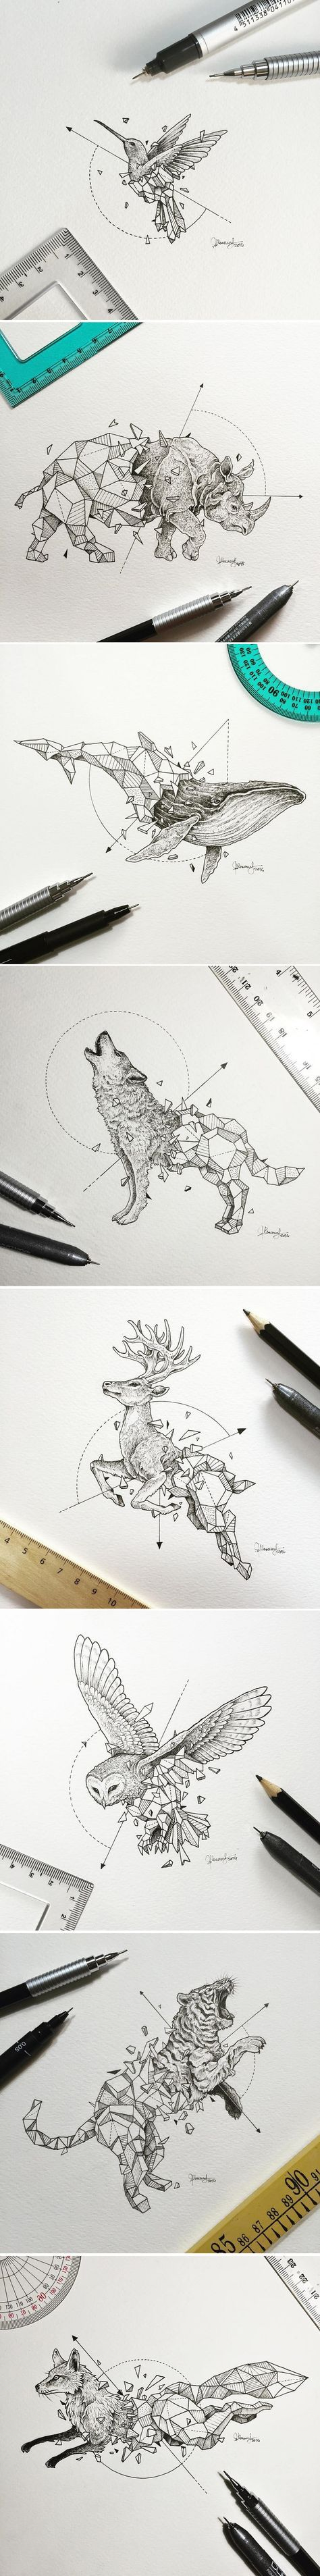 SCULPTING ANIMALS OUT OF GEOMETRY